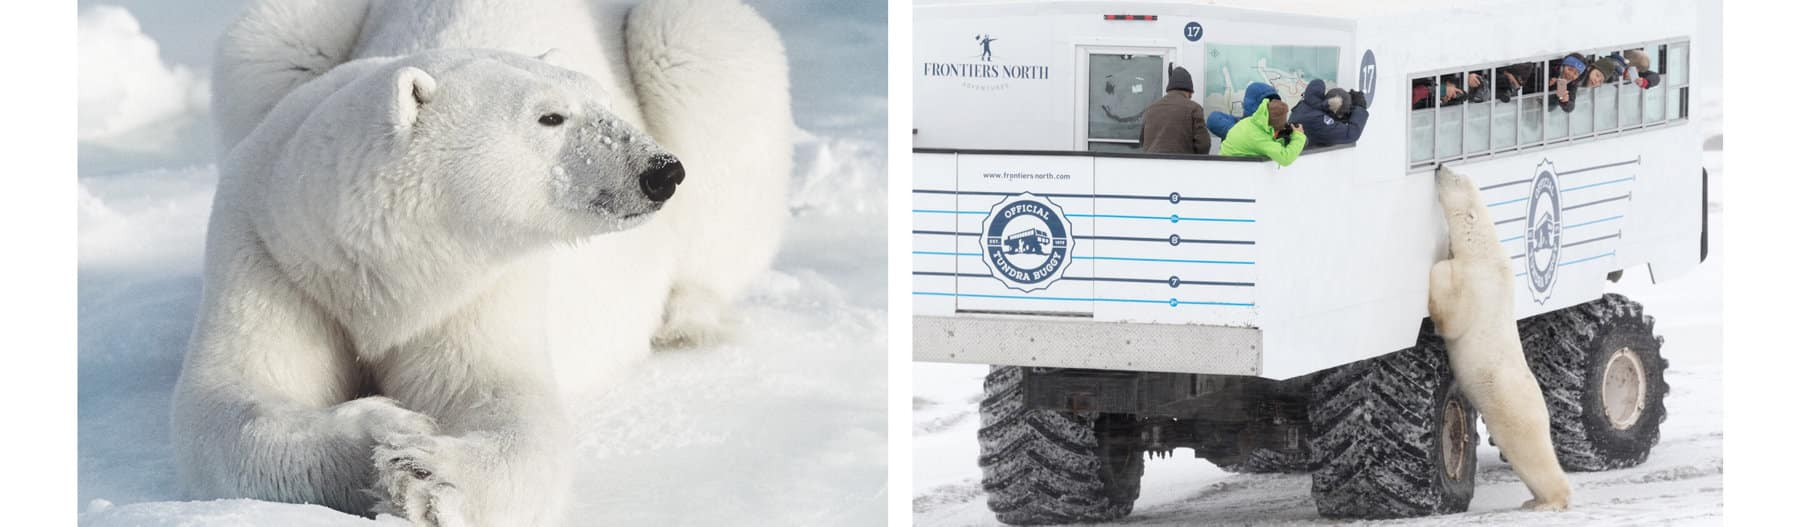 Two color photos are placed side by side. Left: A close-up photo of a polar bear lying down on snow. Right: A polar bear stands up to lean against a large truck filled with people looking out the vehicle's windows. The truck is in a snowy landscape.